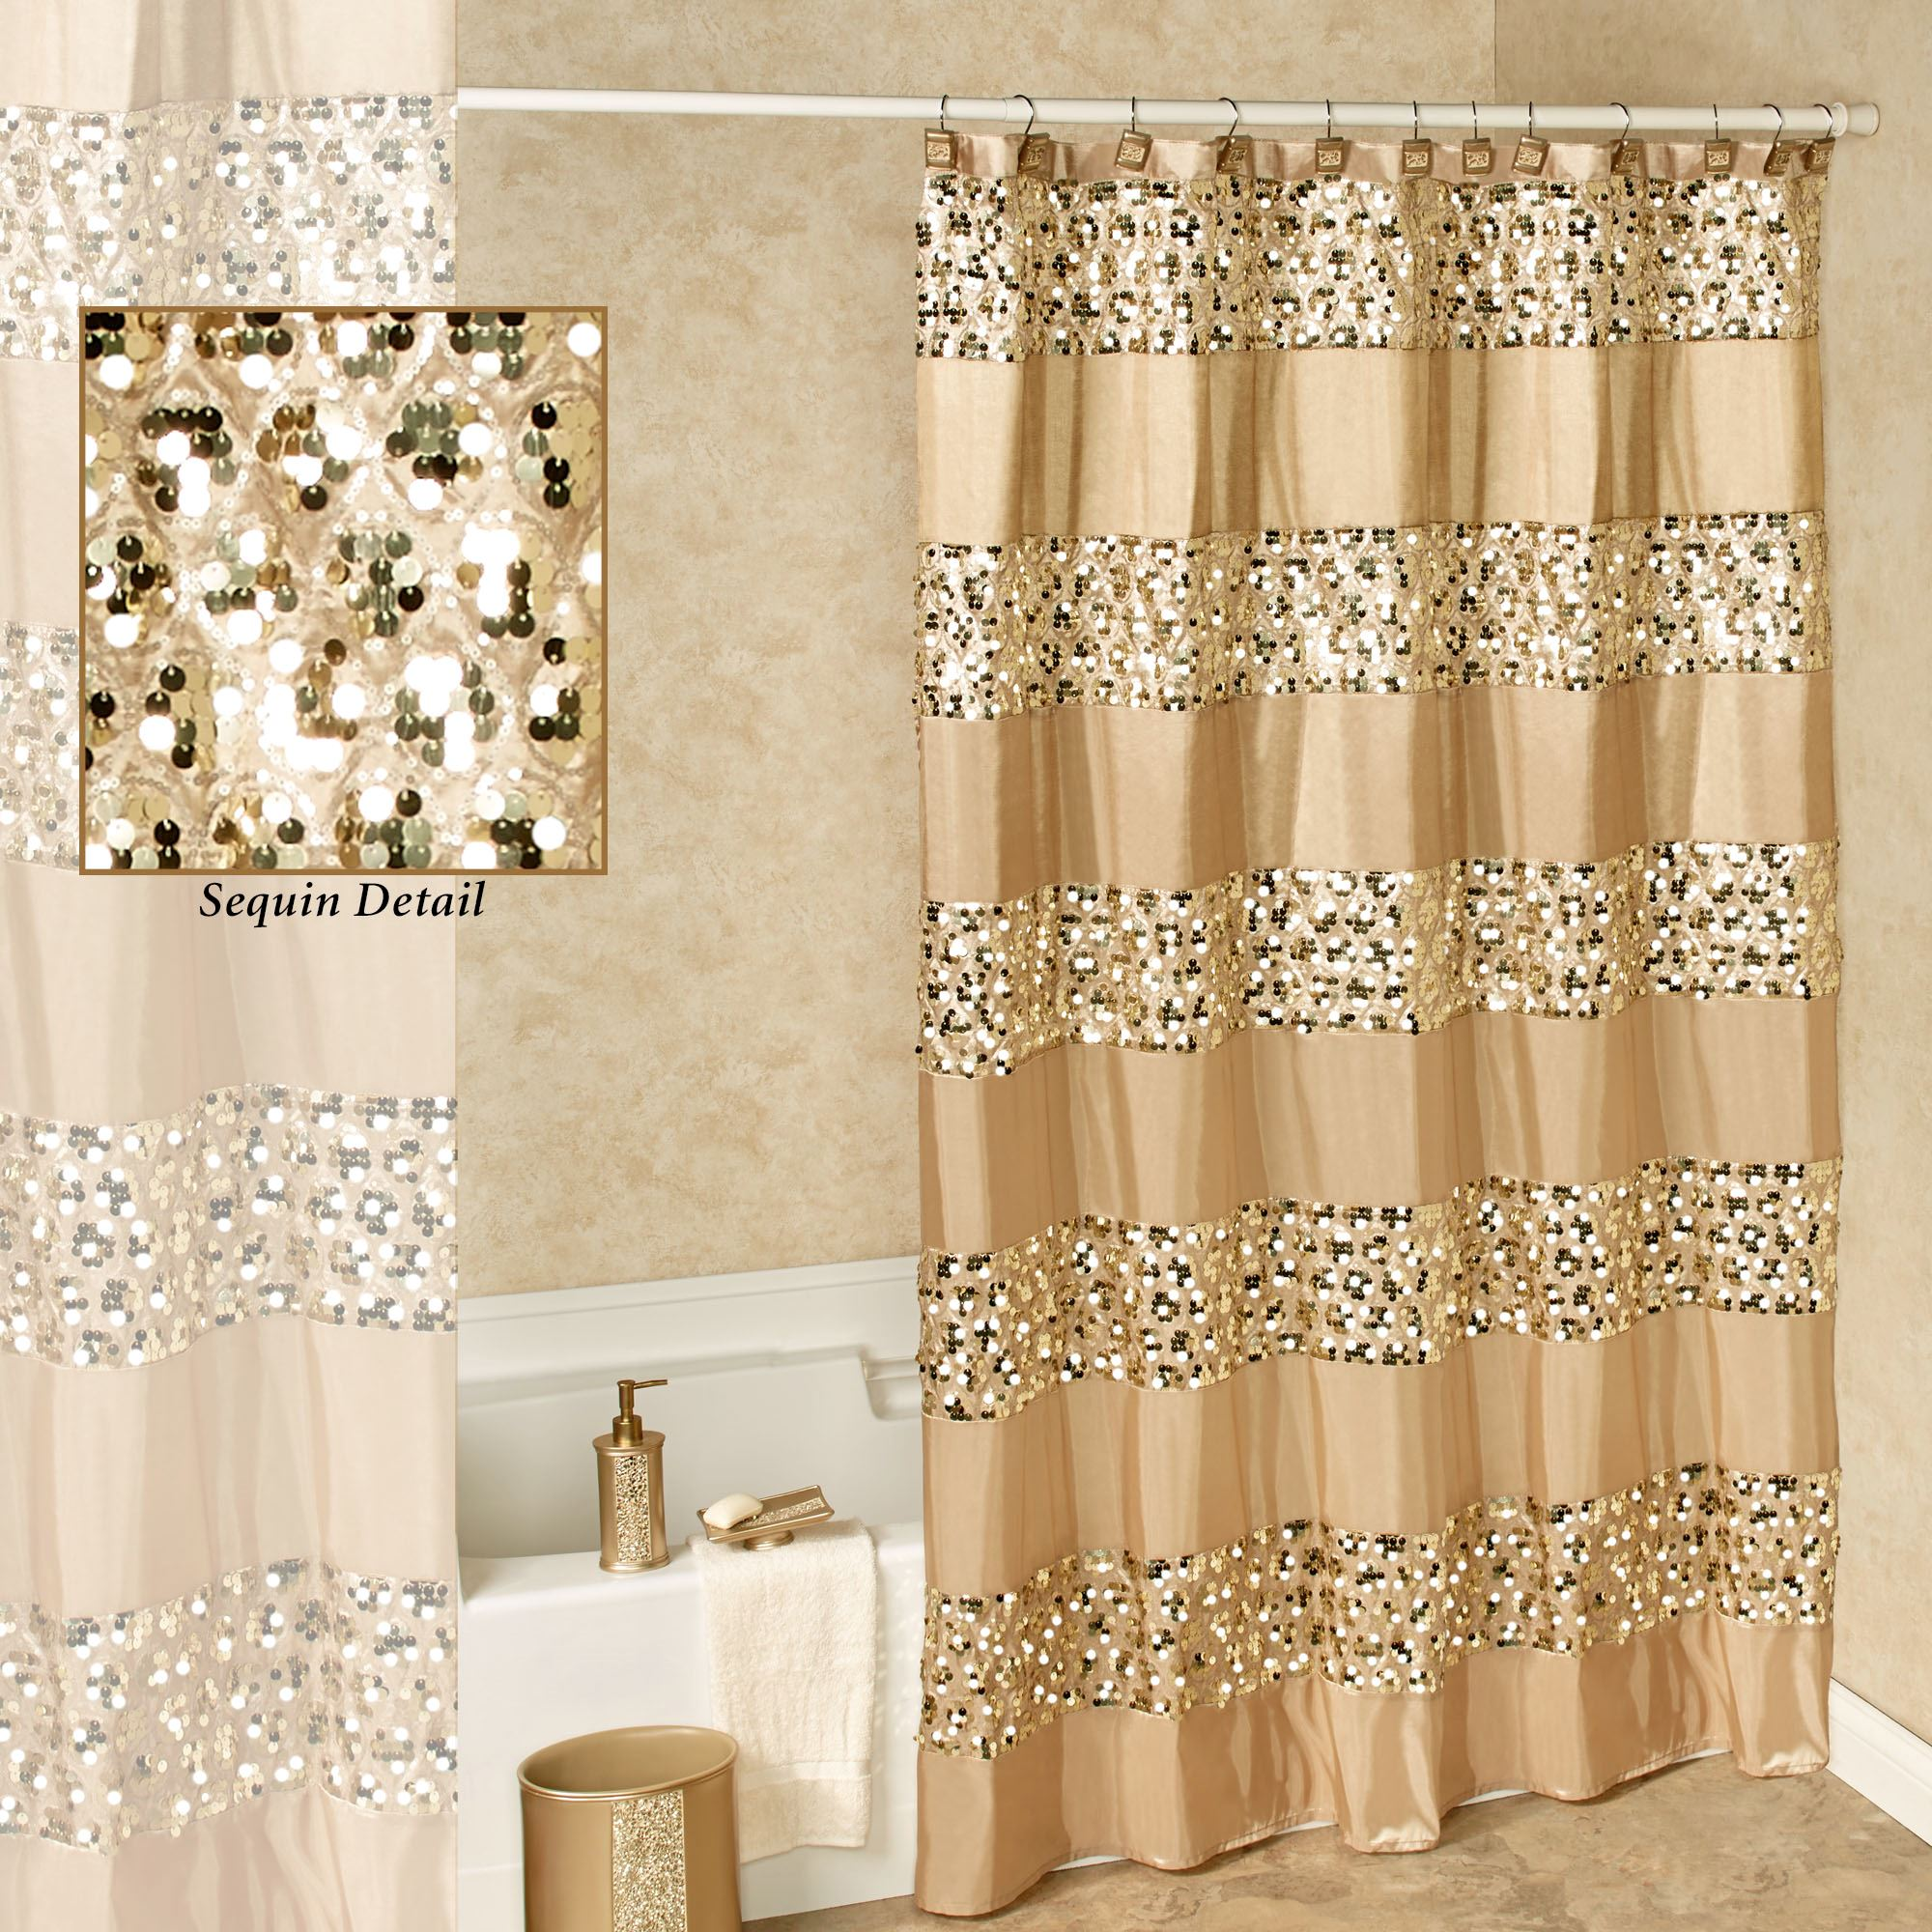 Bathroom Valance Ideas Prestigue Champagne Gold Sequined Shower Curtain